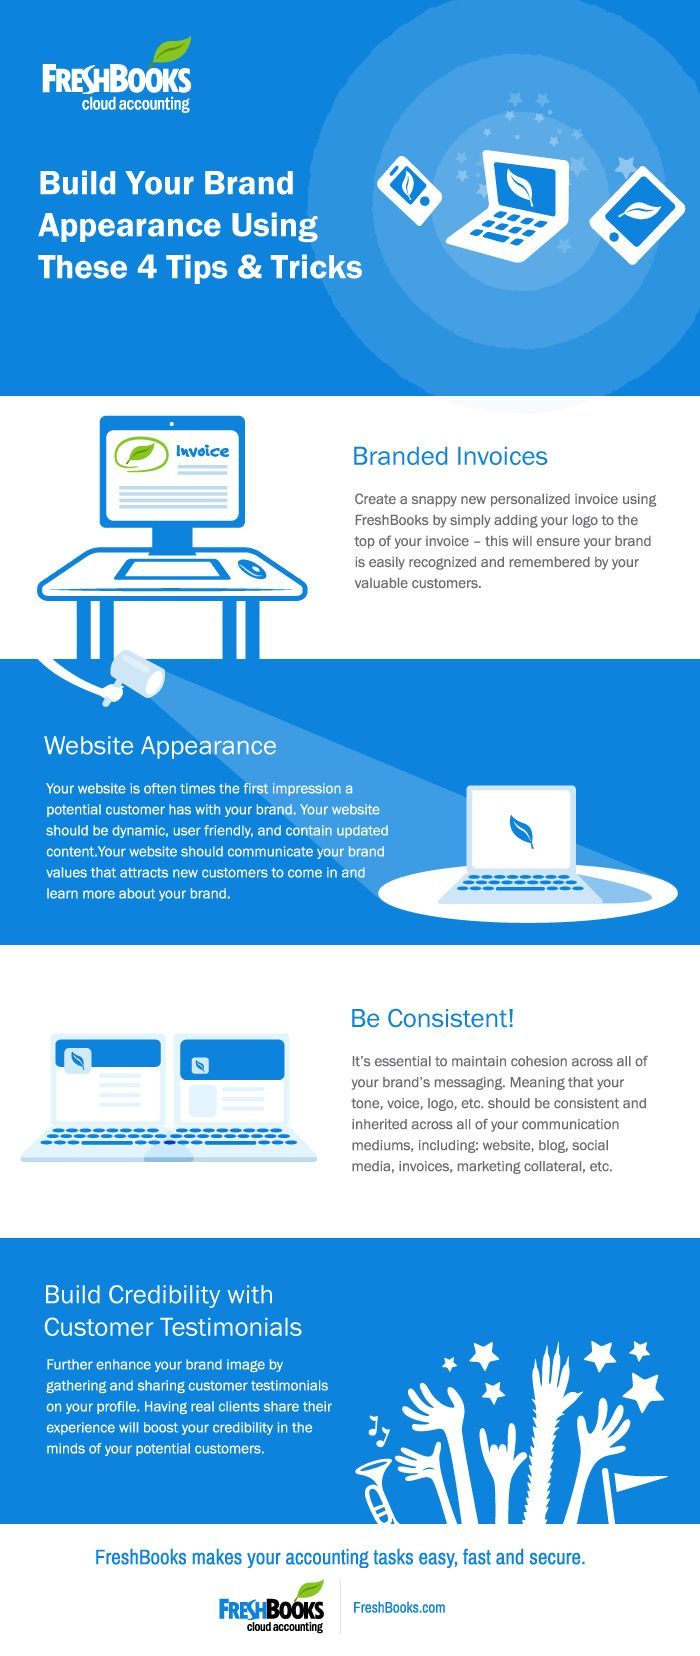 Build your brand appearance using these 4 tips and tricks (Infographic) #Infographic #FreshBooks #SmallBiz #Startups